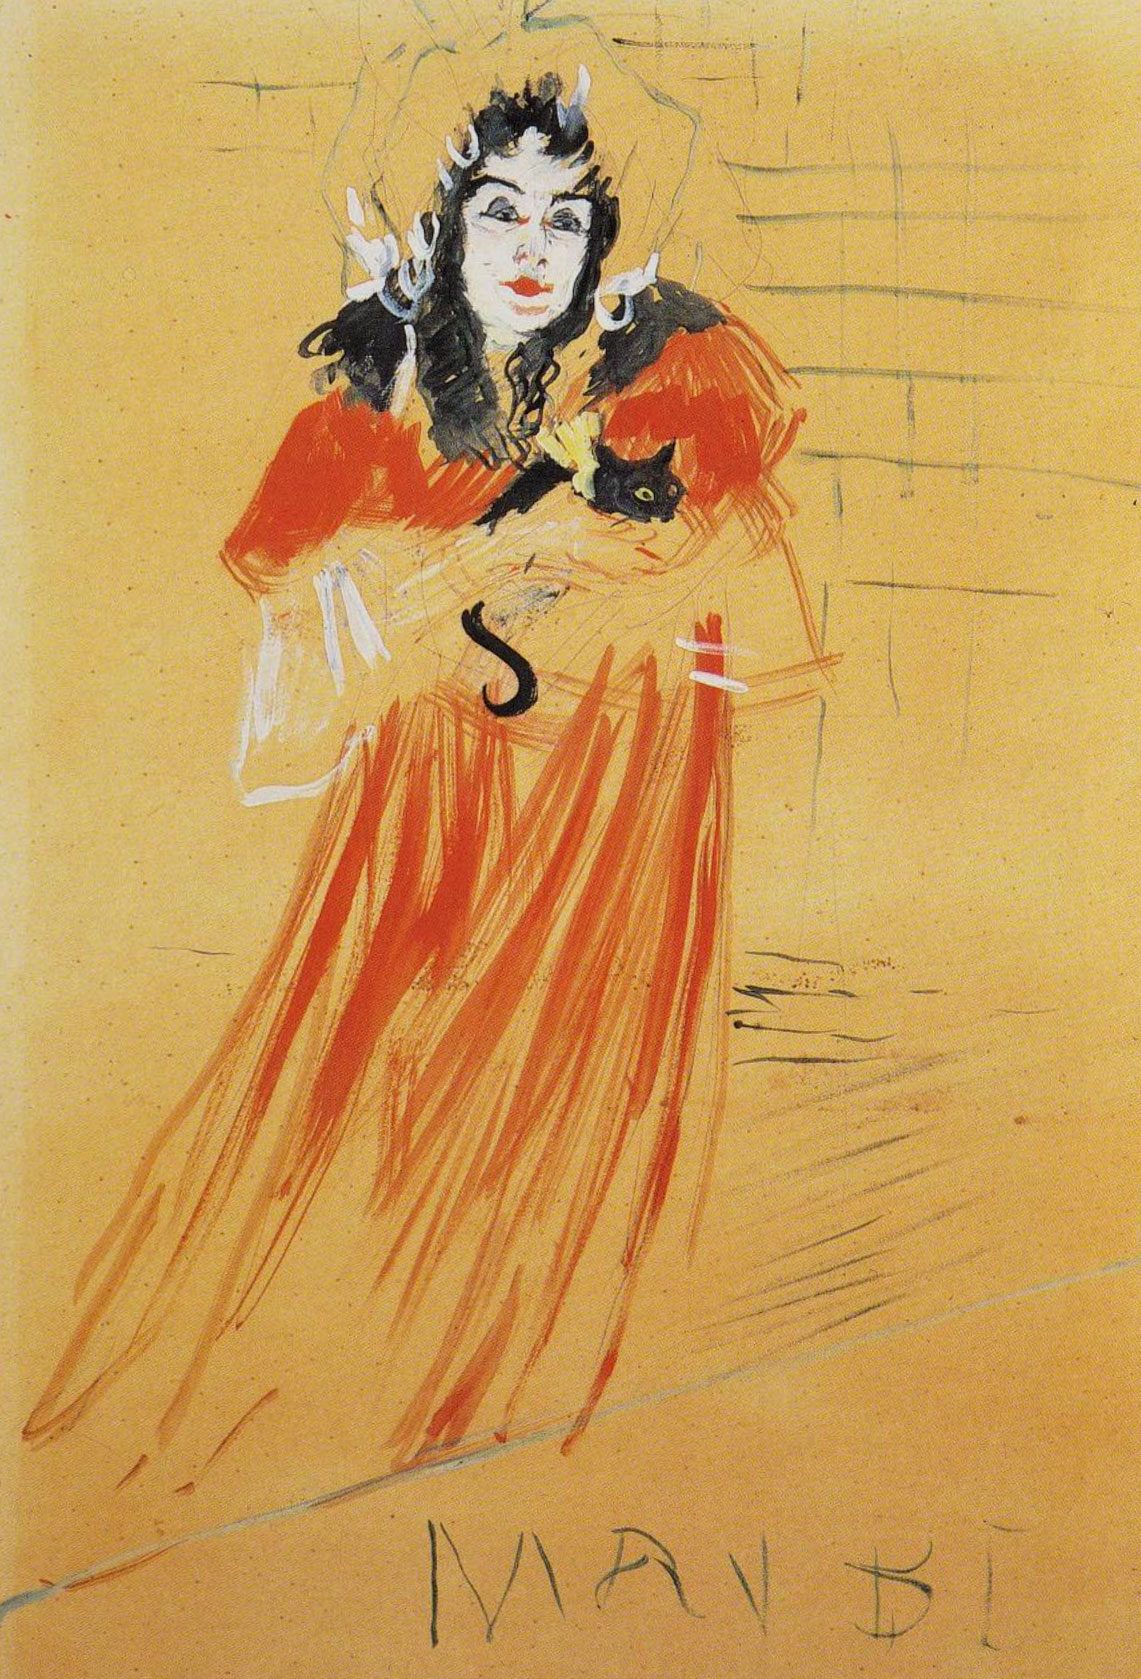 Henri de Toulouse-Lautrec, Miss May Belfort (Maquette for the poster). Gouache and pencil on paper, 1895.